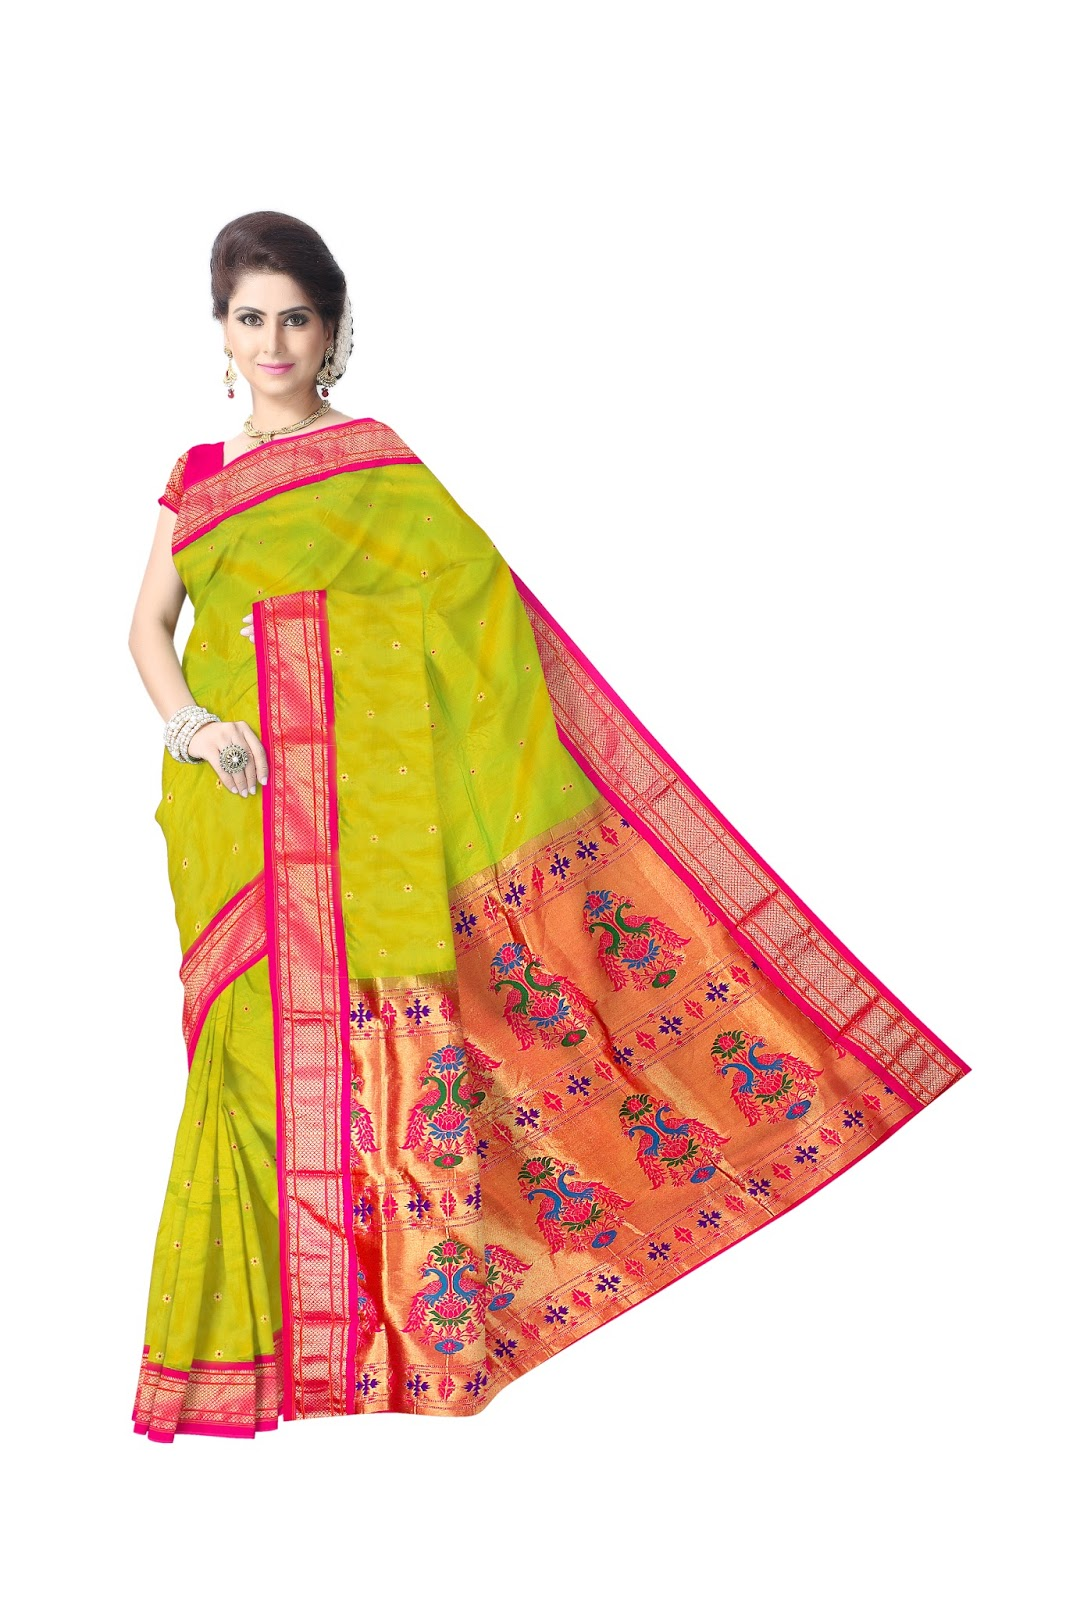 02a316cb0 Our highly adored clients make sure of choosing an apt design for their Paithani  Sarees online that suits their personality and we are prompt enough to ...